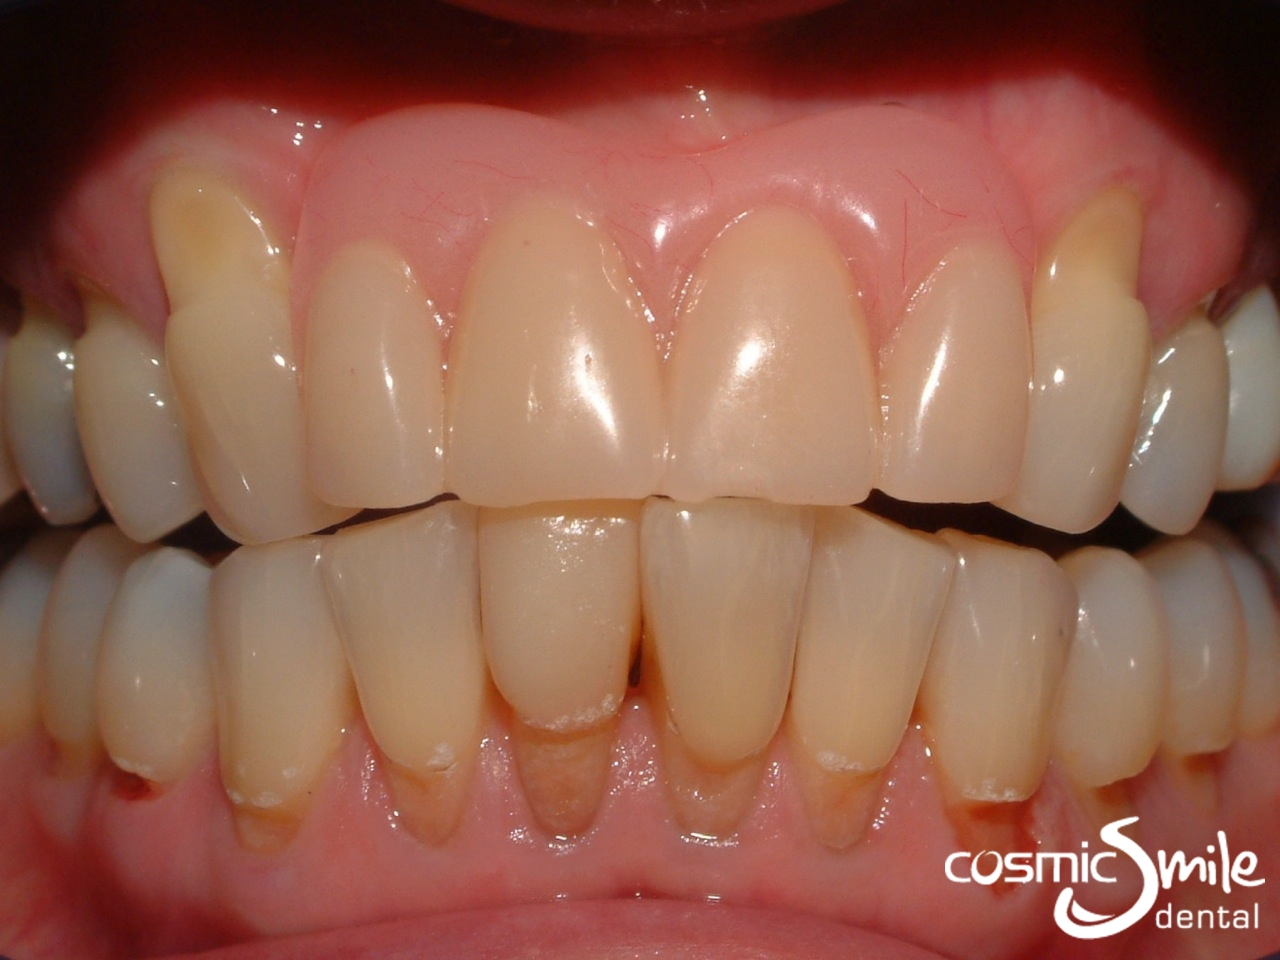 Composite toothbrush abrasion lesions on lower teeth